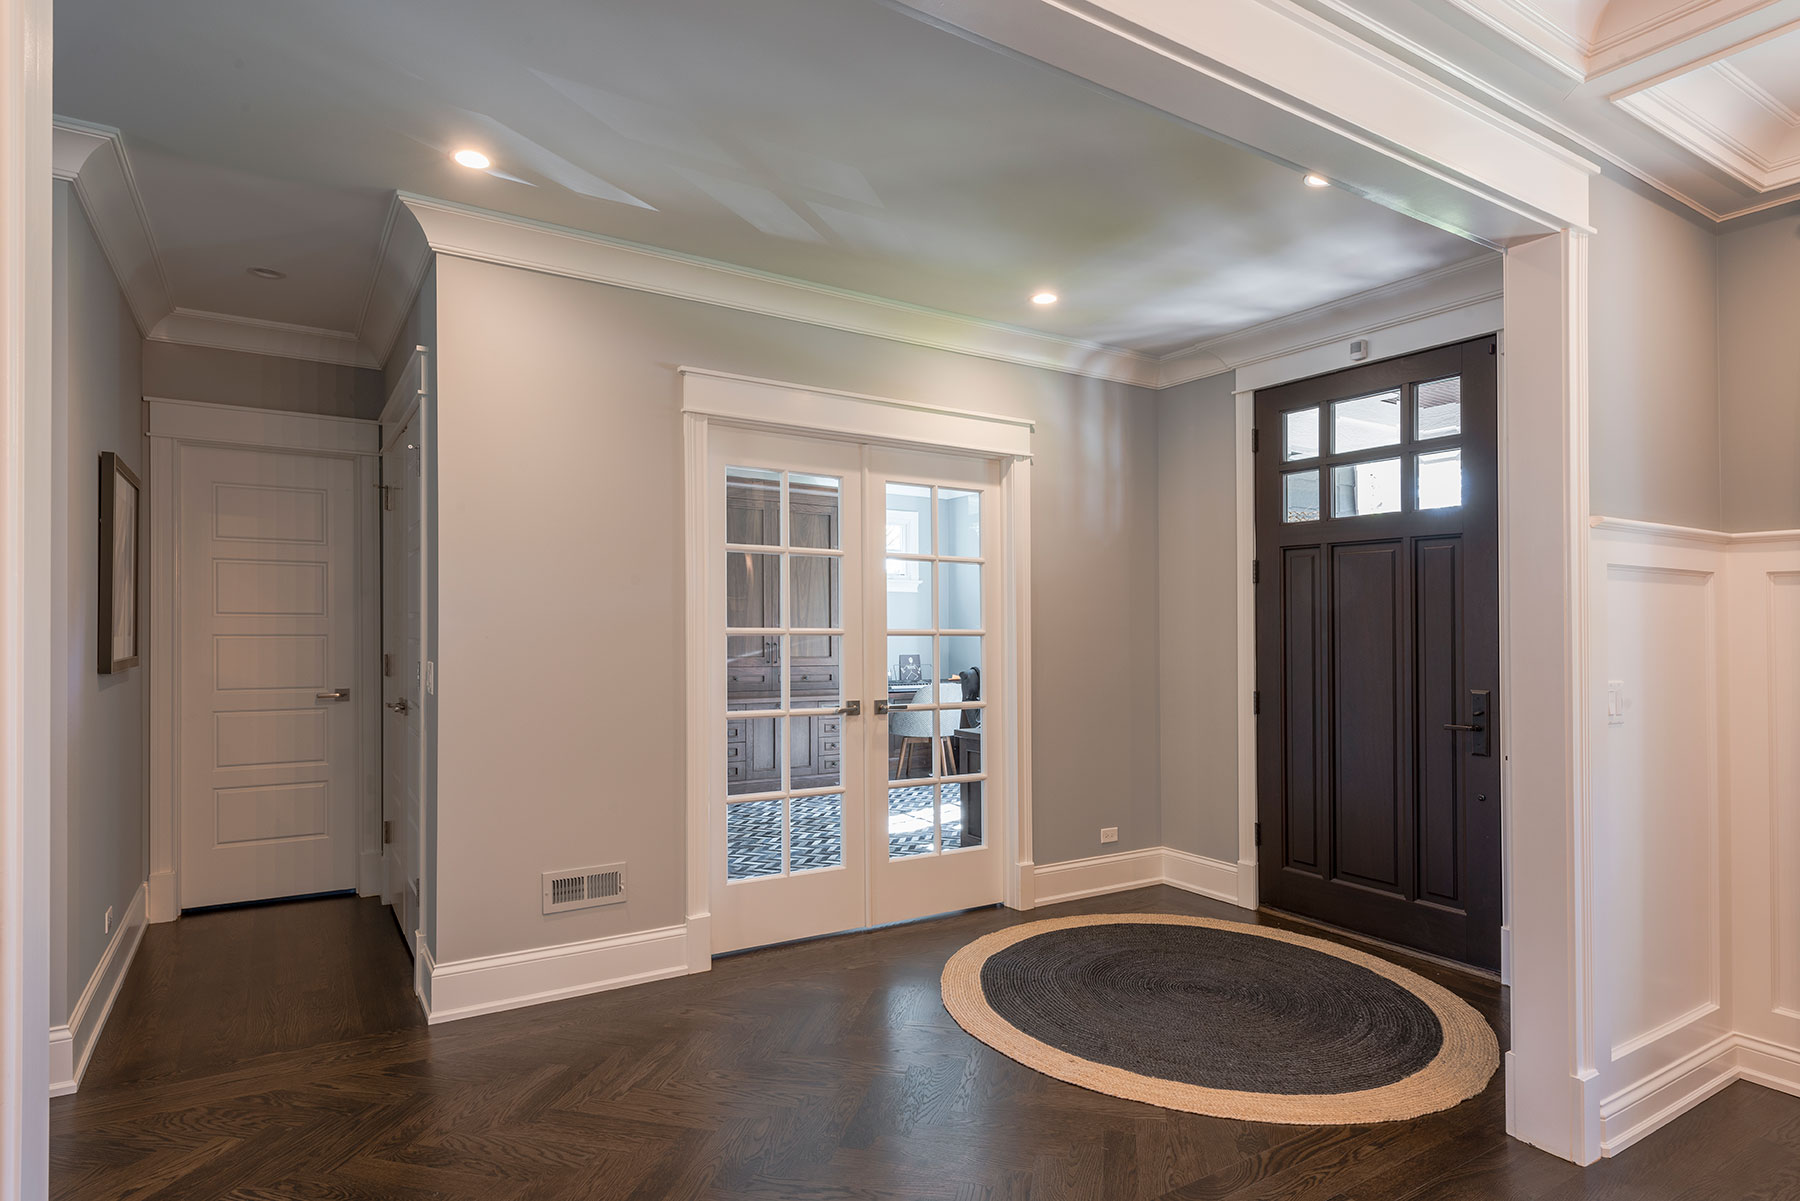 Custom Wood Front Entry Doors | classic front entry door, interior view, solid wood, dark finish DB-311PW - Glenview Doors - Custom Doors in Chicago